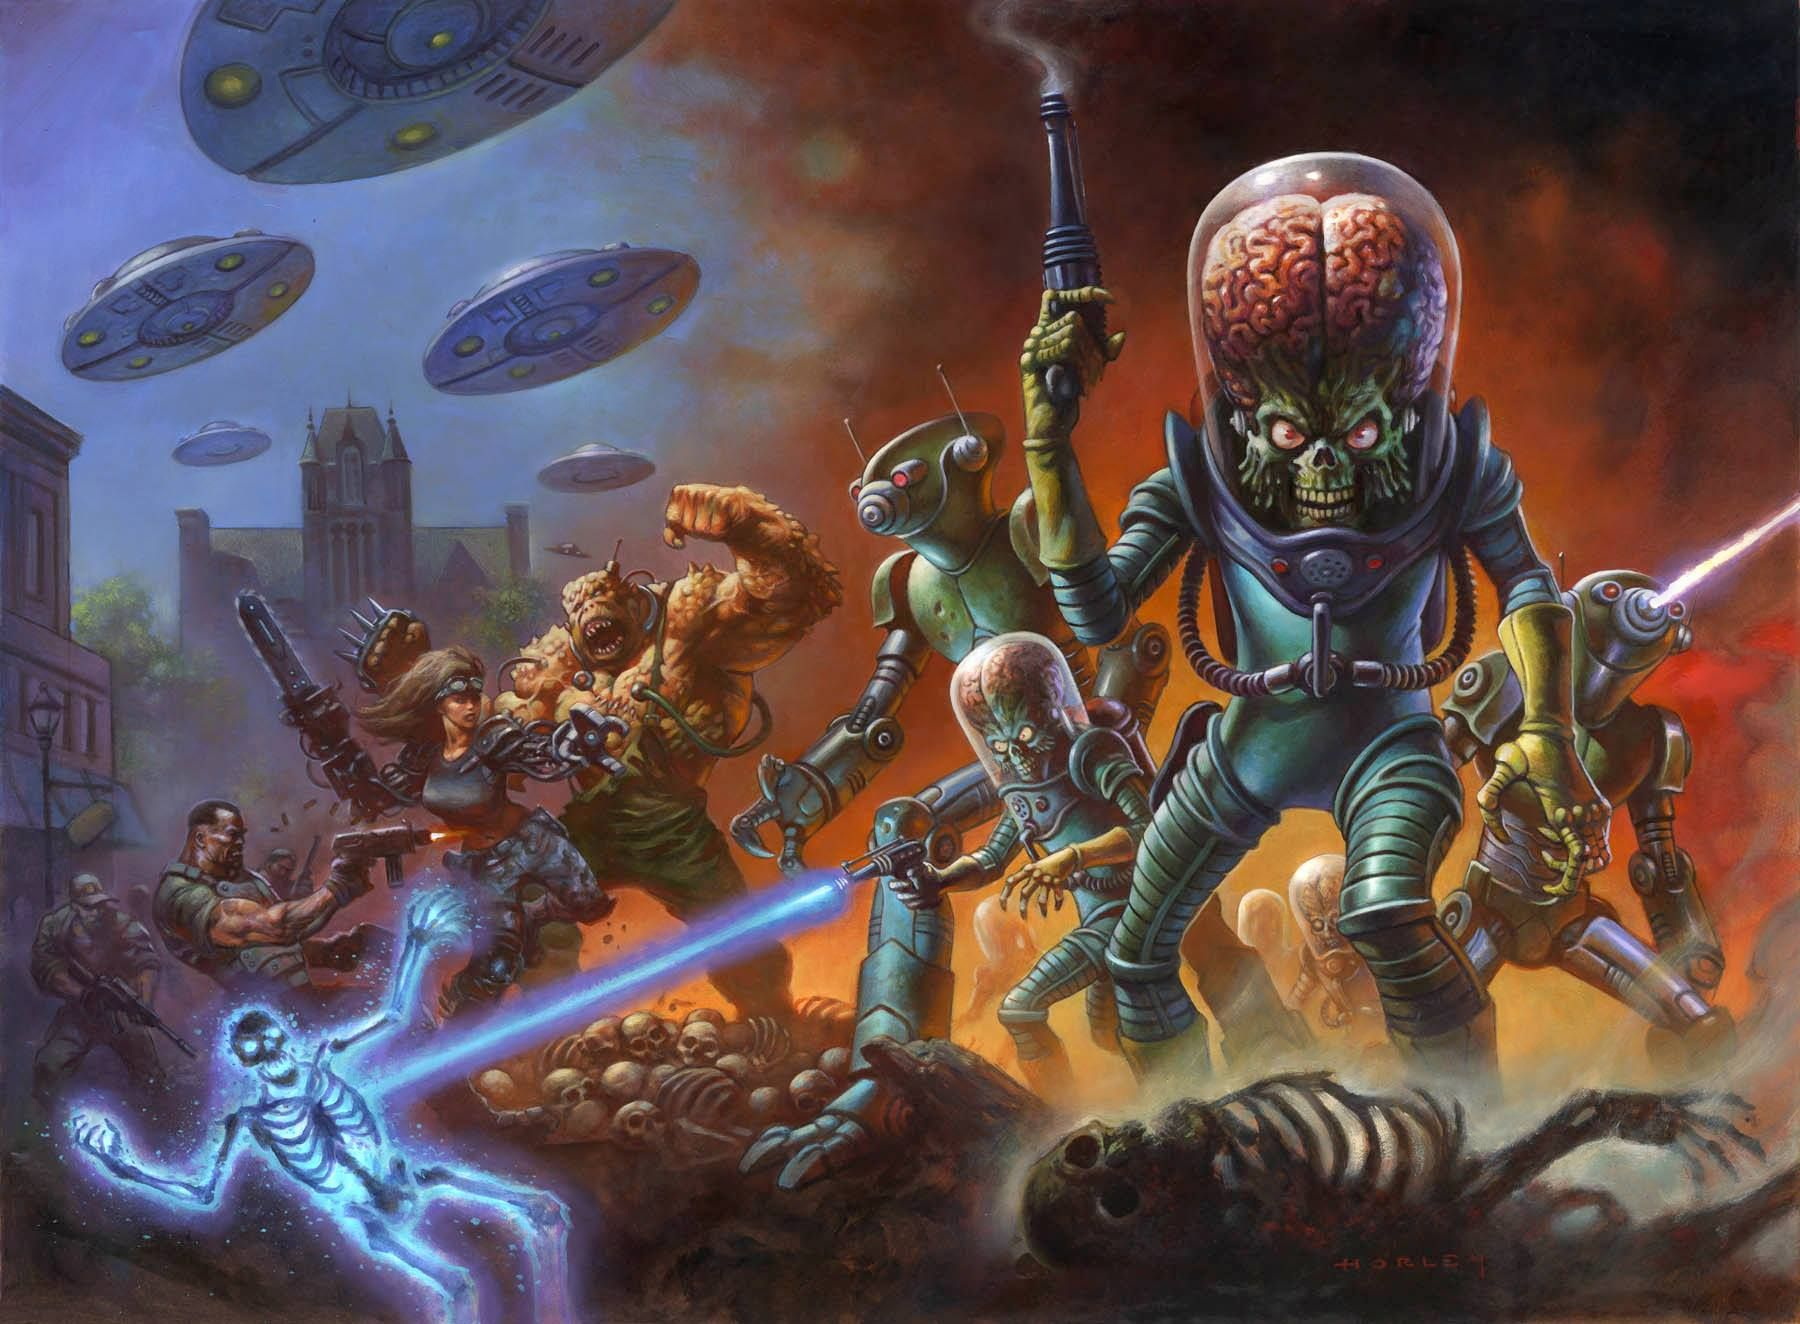 Box art for mars attacks occupation without logos